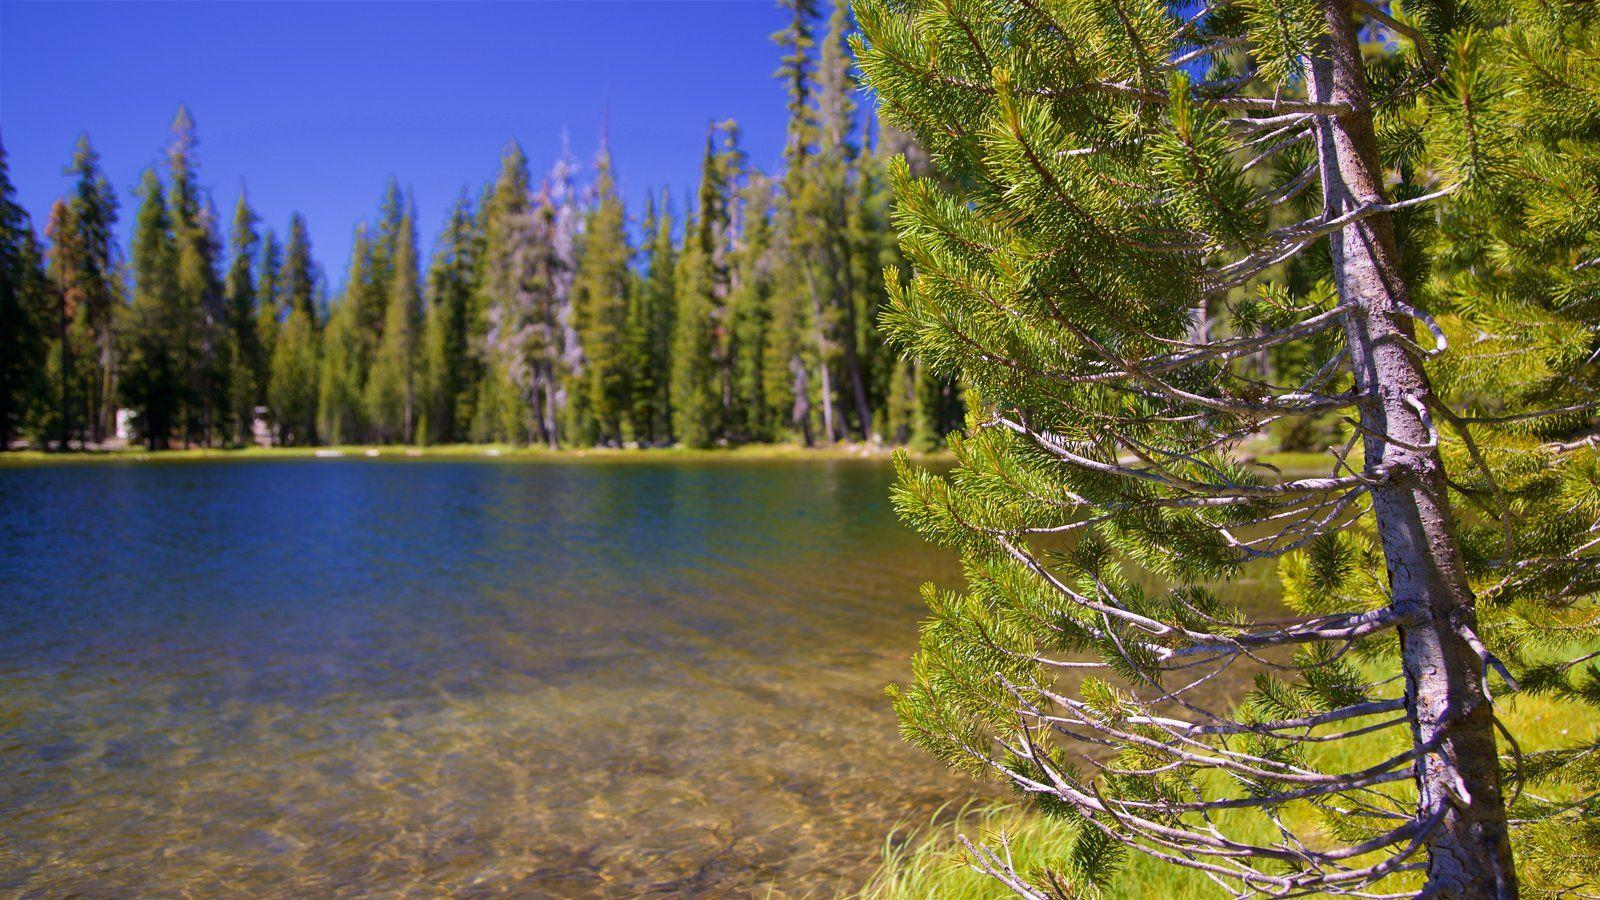 Lassen Volcanic National Park Pictures: View Photos & Images of ...